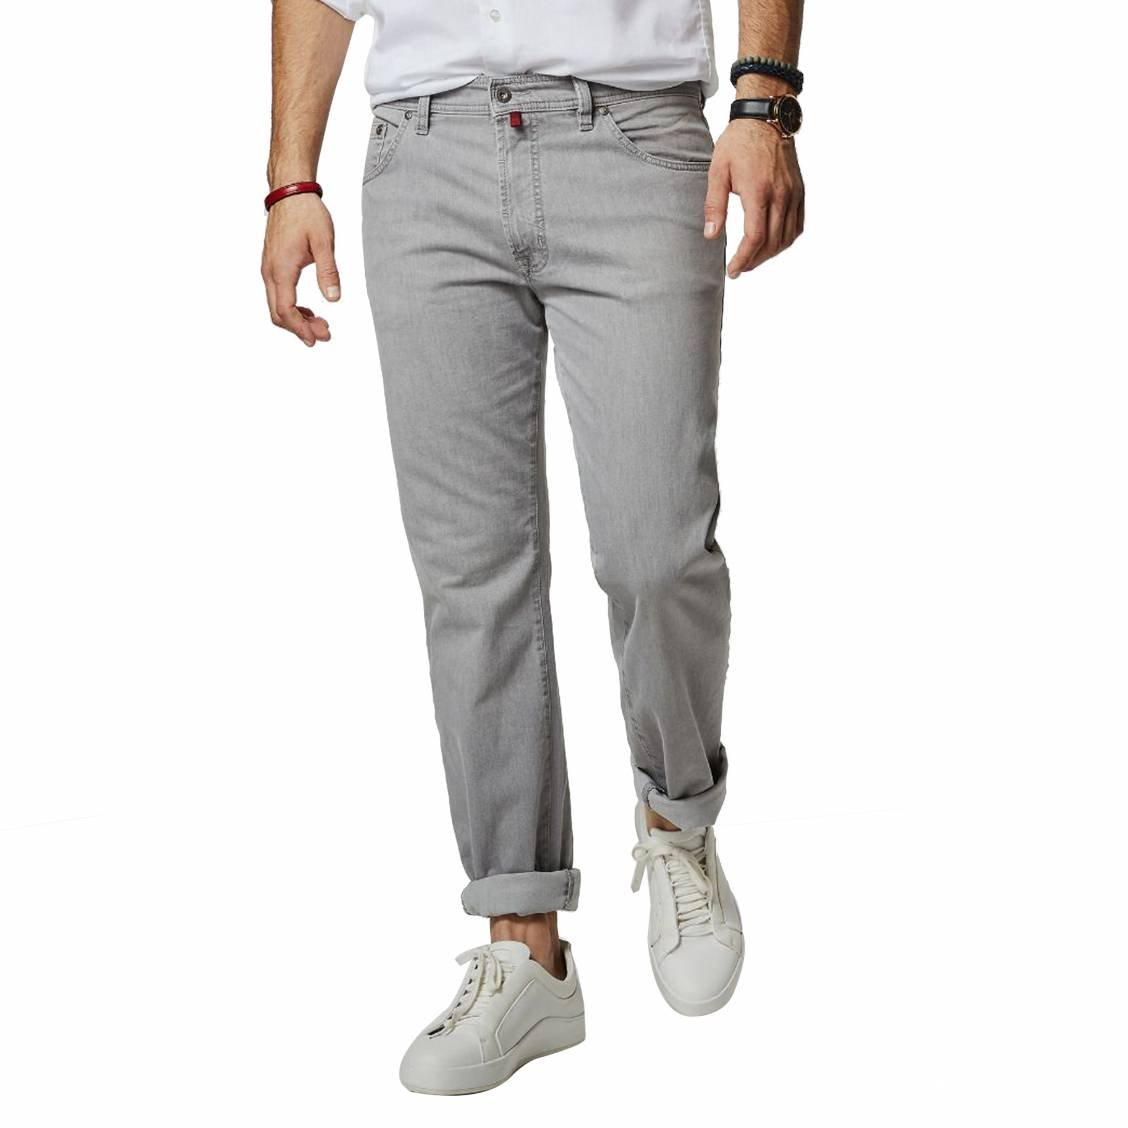 Jean  deauville airtouch gris clair